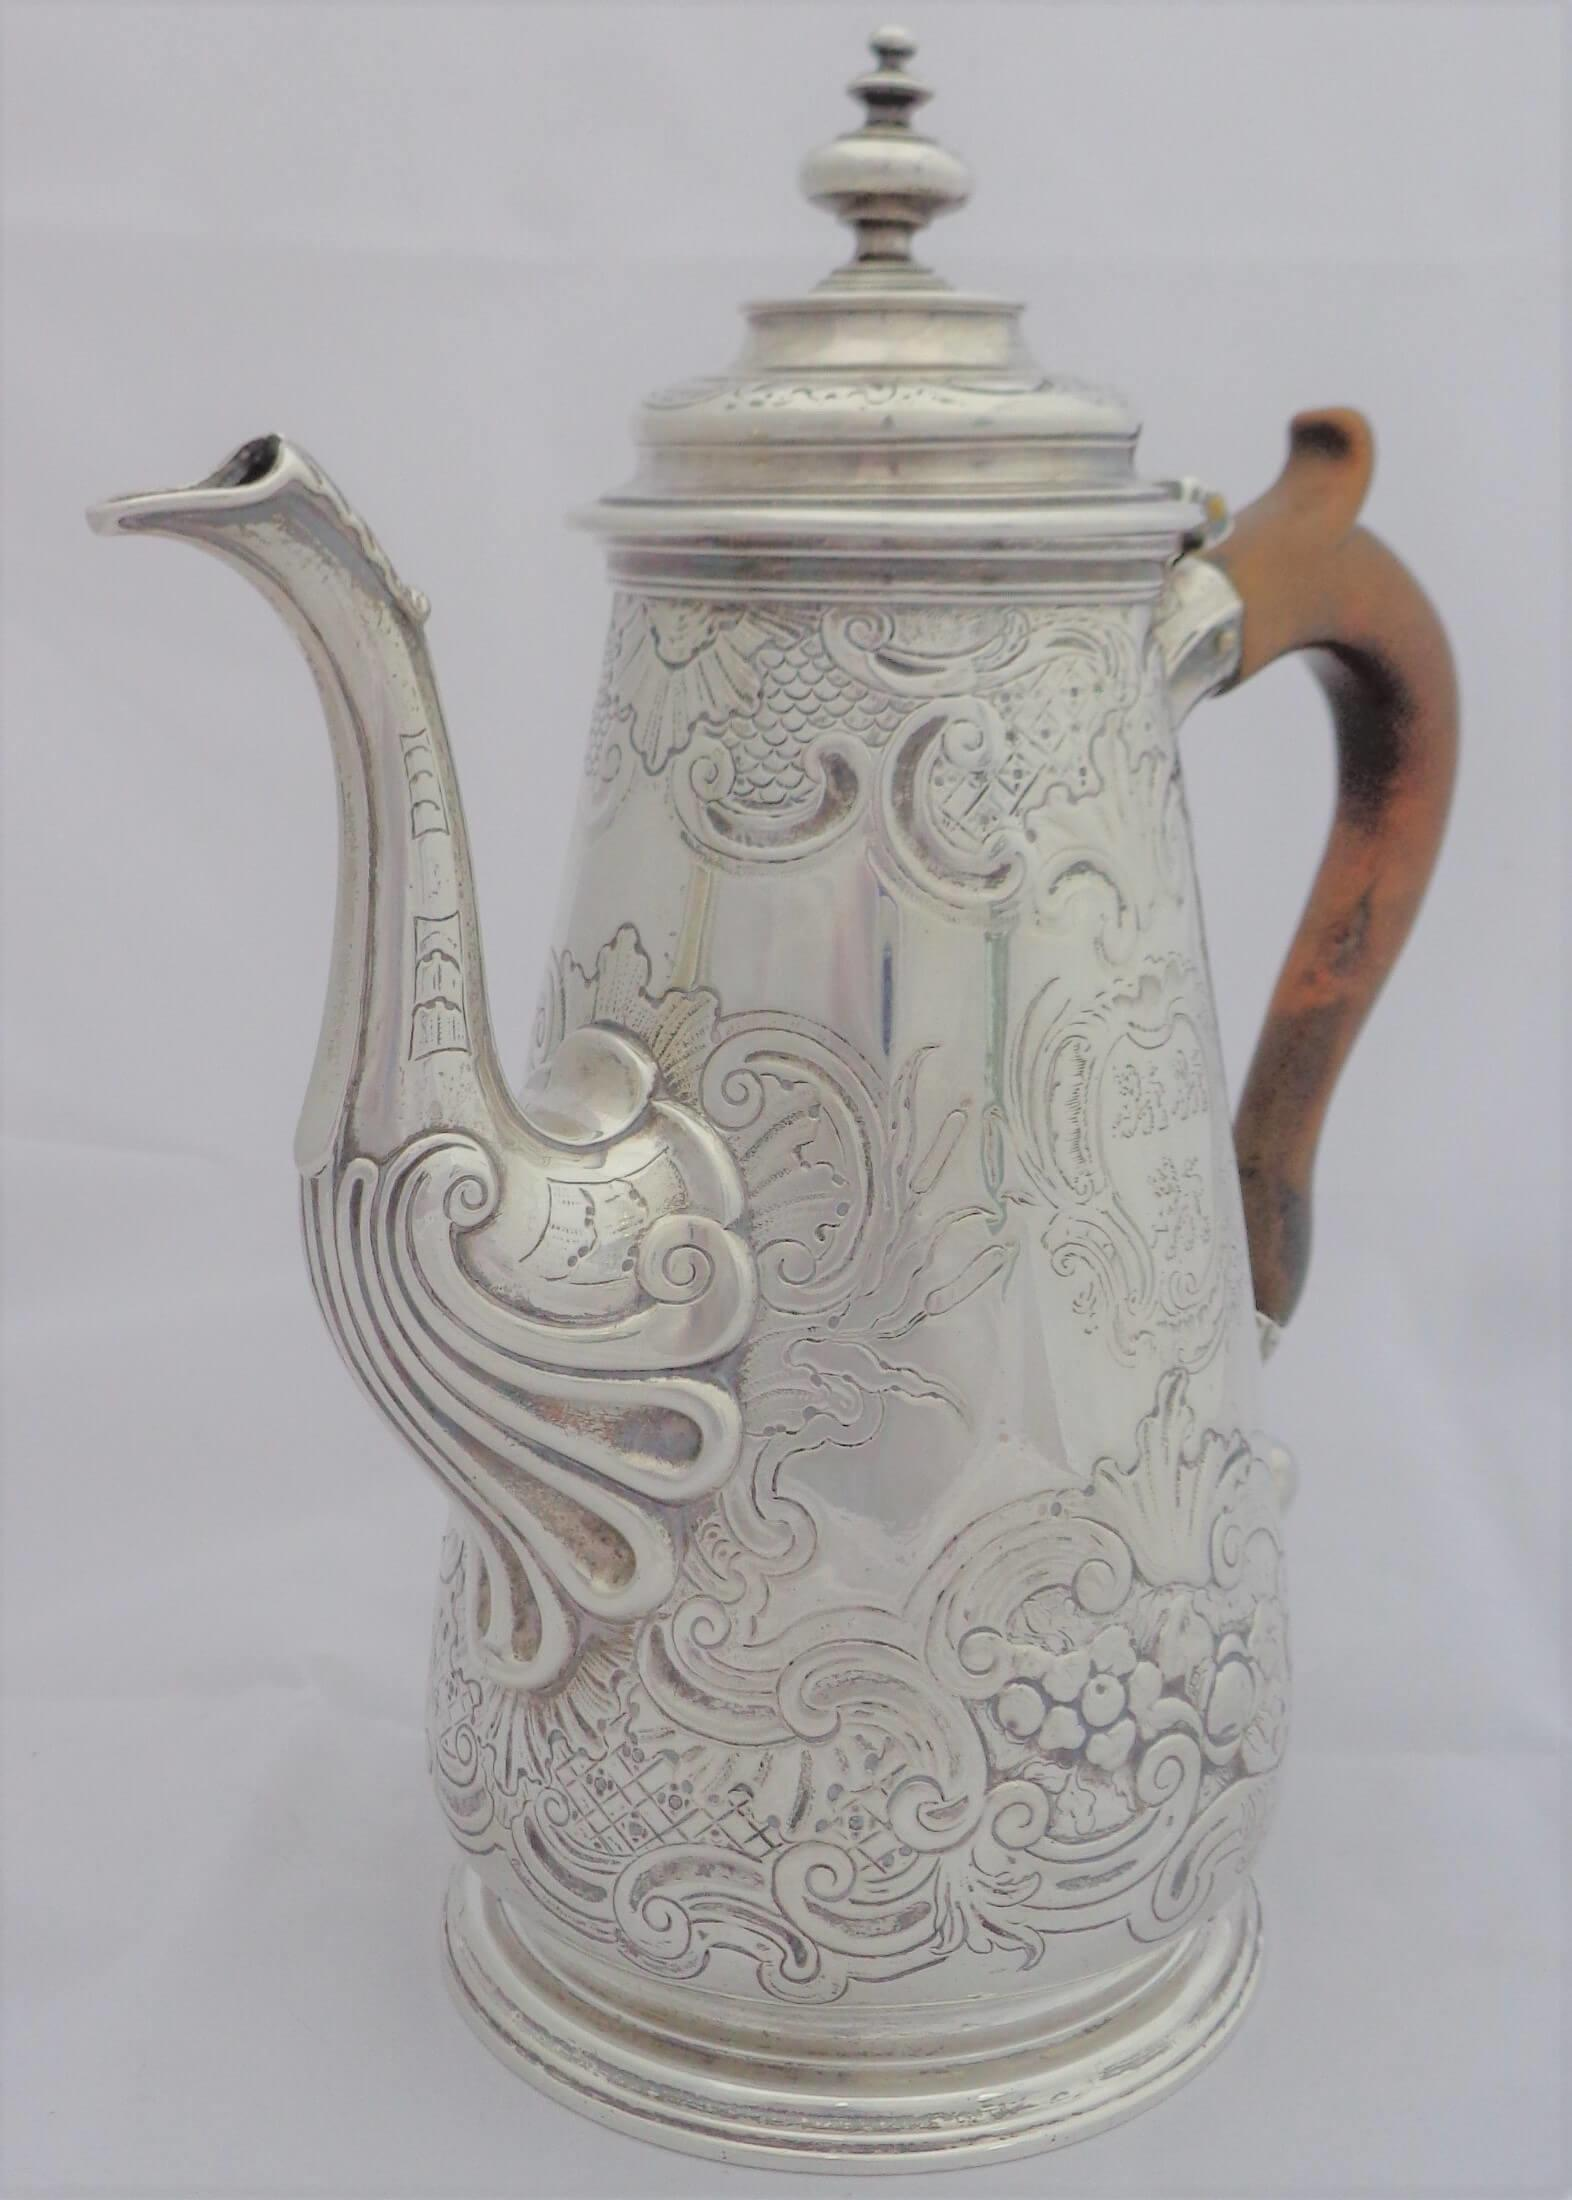 George II Sterling silver coffee pot by Paul Crespin Hallmarked London 1750 converted from a Chocolate pot.